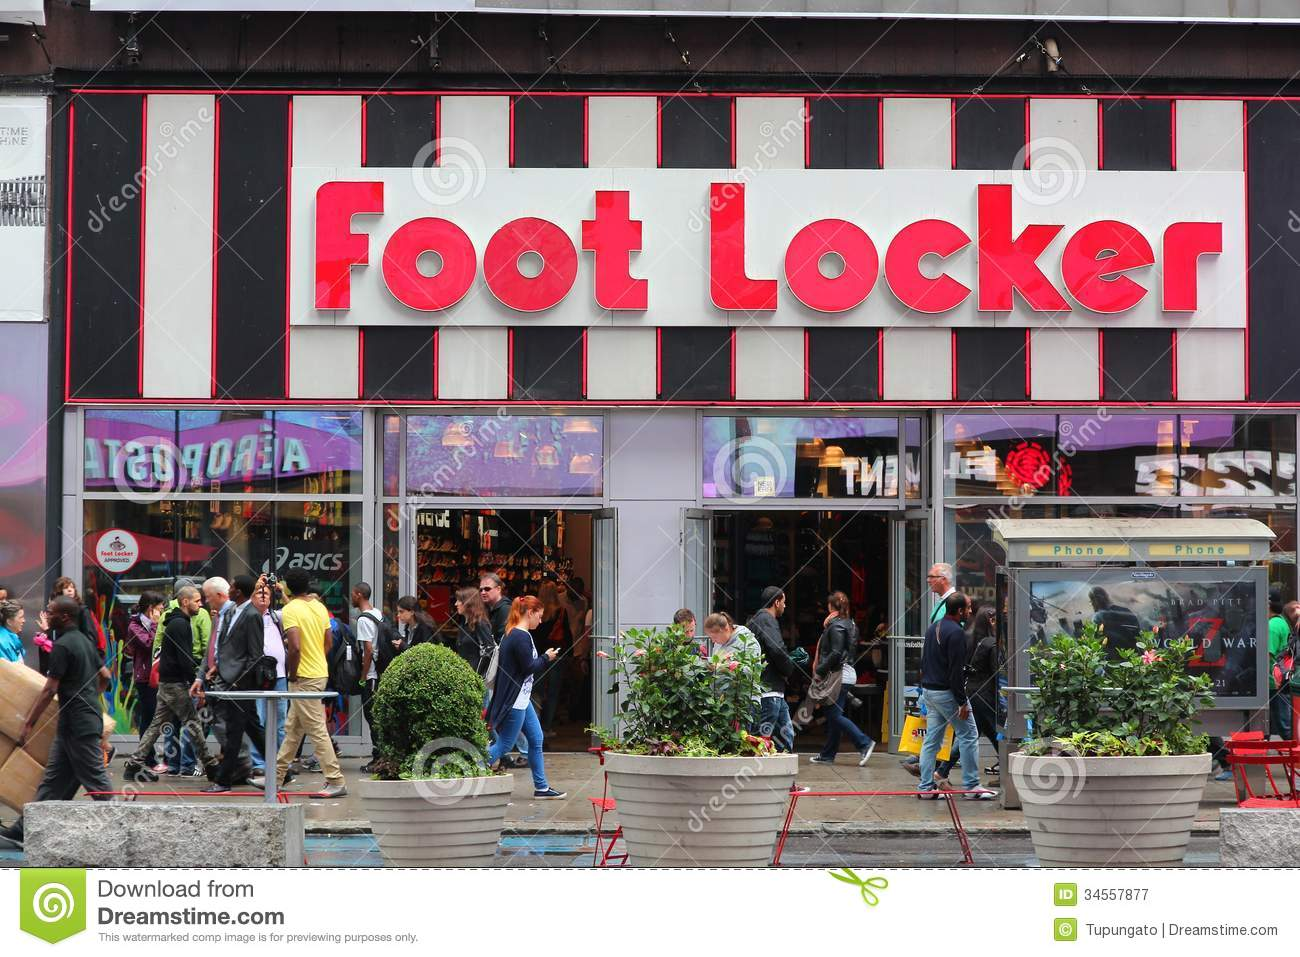 foot locker shoe store in italy editorial image 22416516. Black Bedroom Furniture Sets. Home Design Ideas